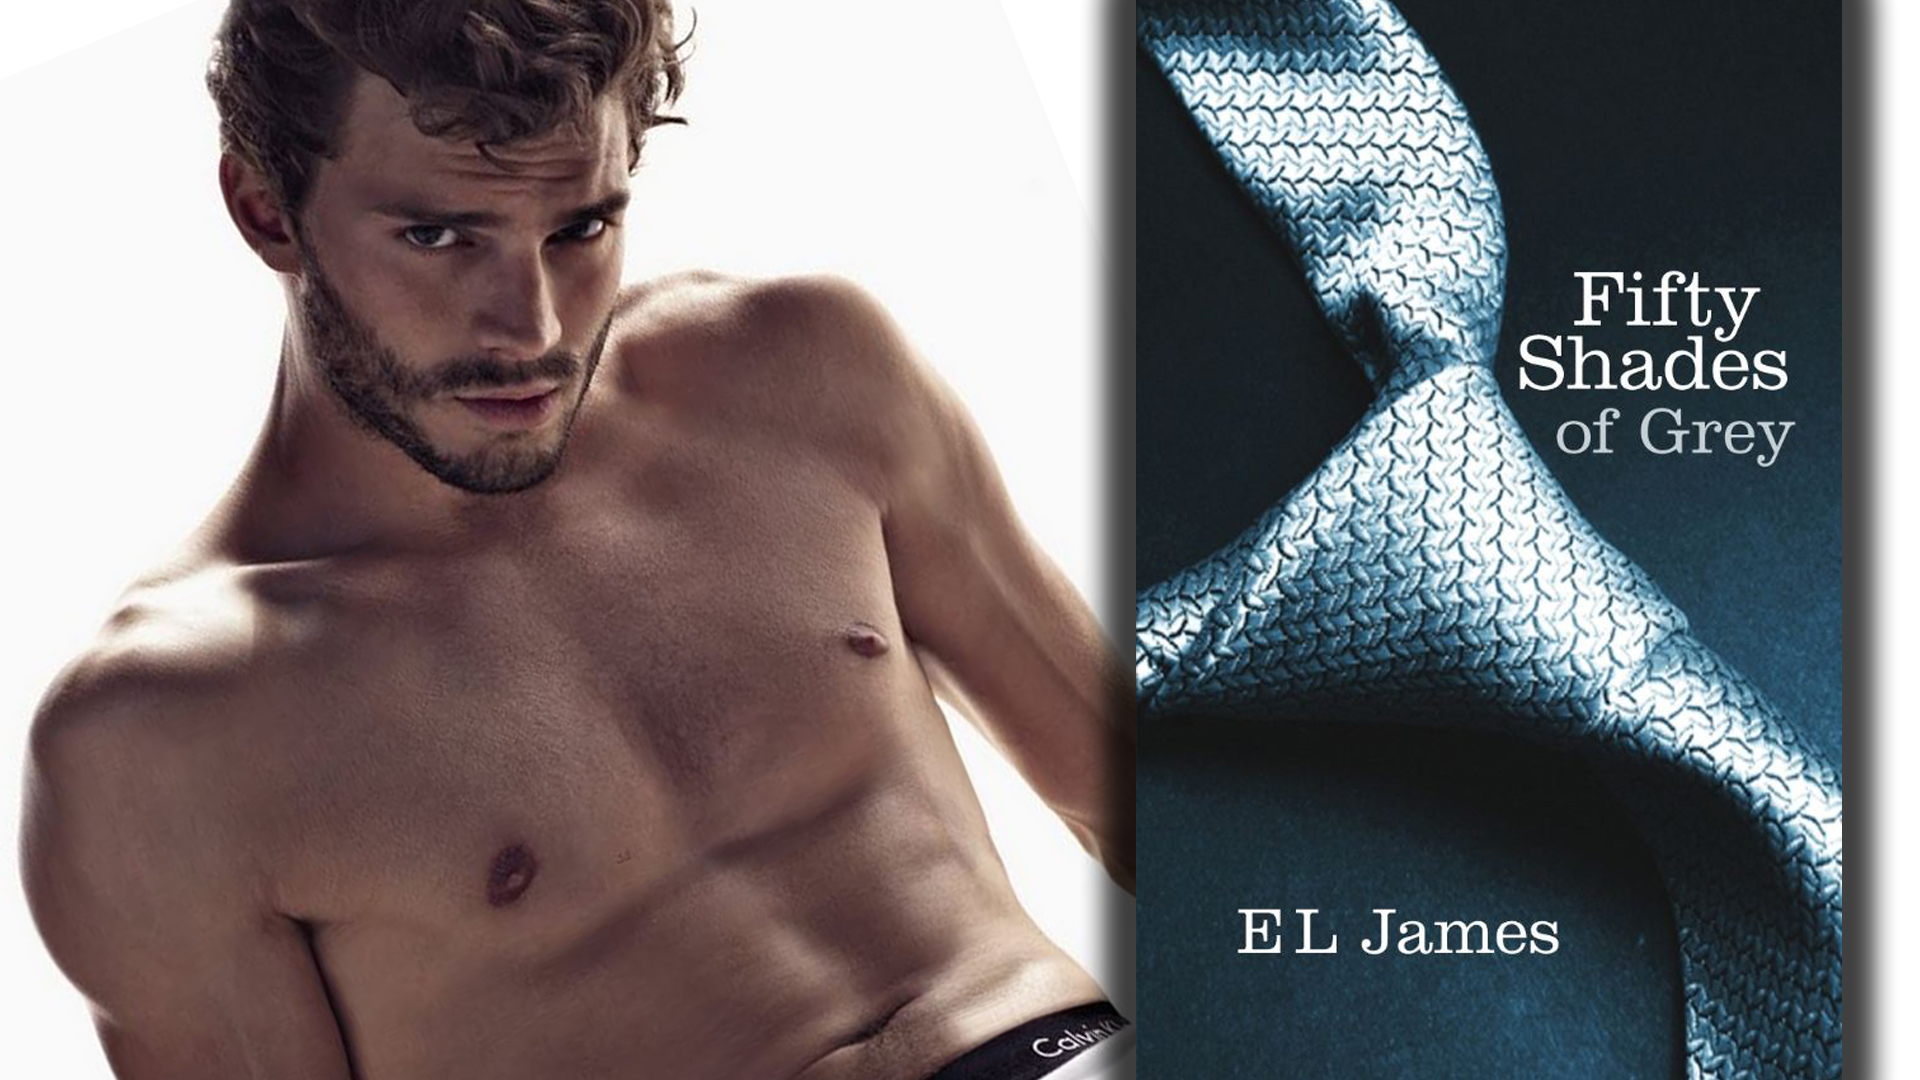 Jamie-Dornan-fifty-shades-of-grey-ebook.jpg